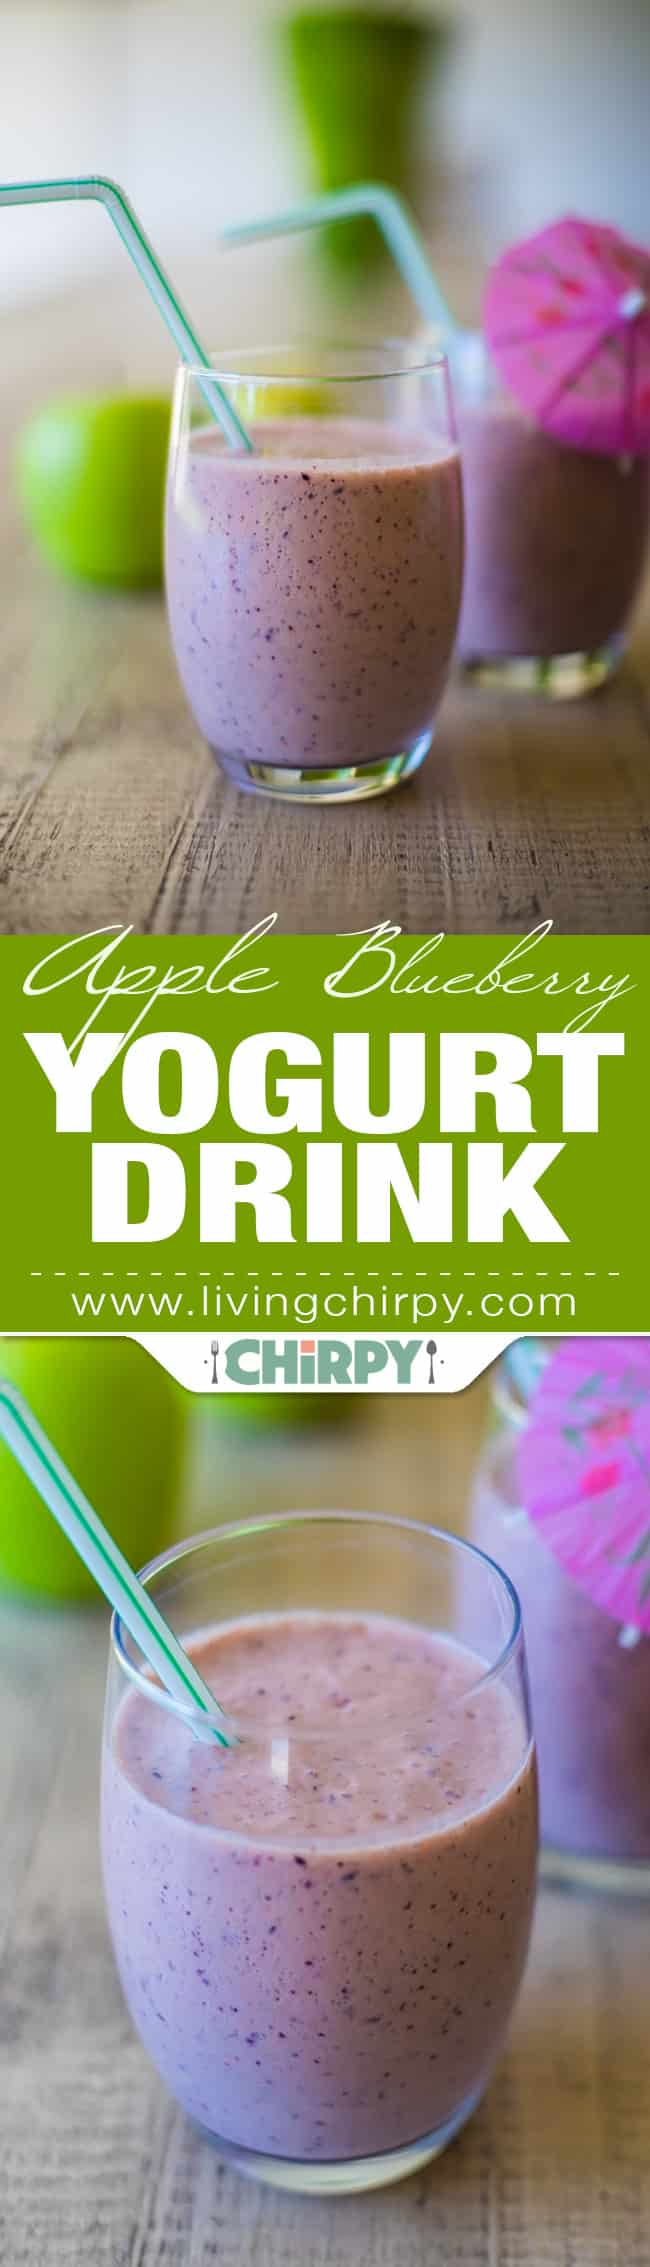 apple-blueberry-yogurt-drink